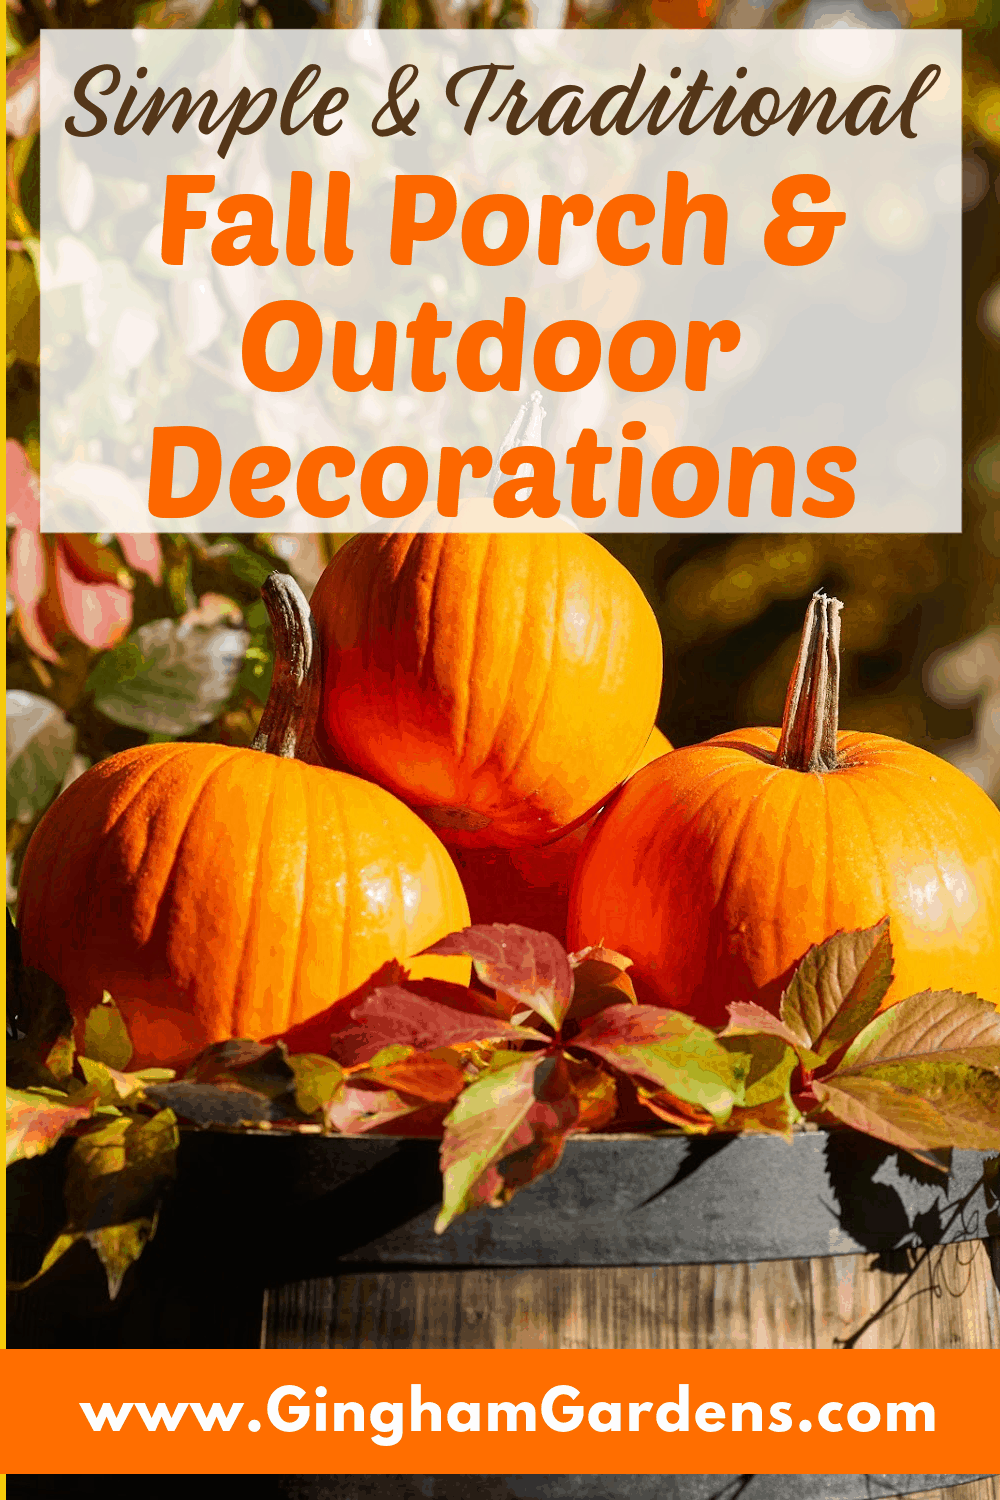 Image of pumpkins with text overlay - simple and traditional fall porch and outdoor decorations